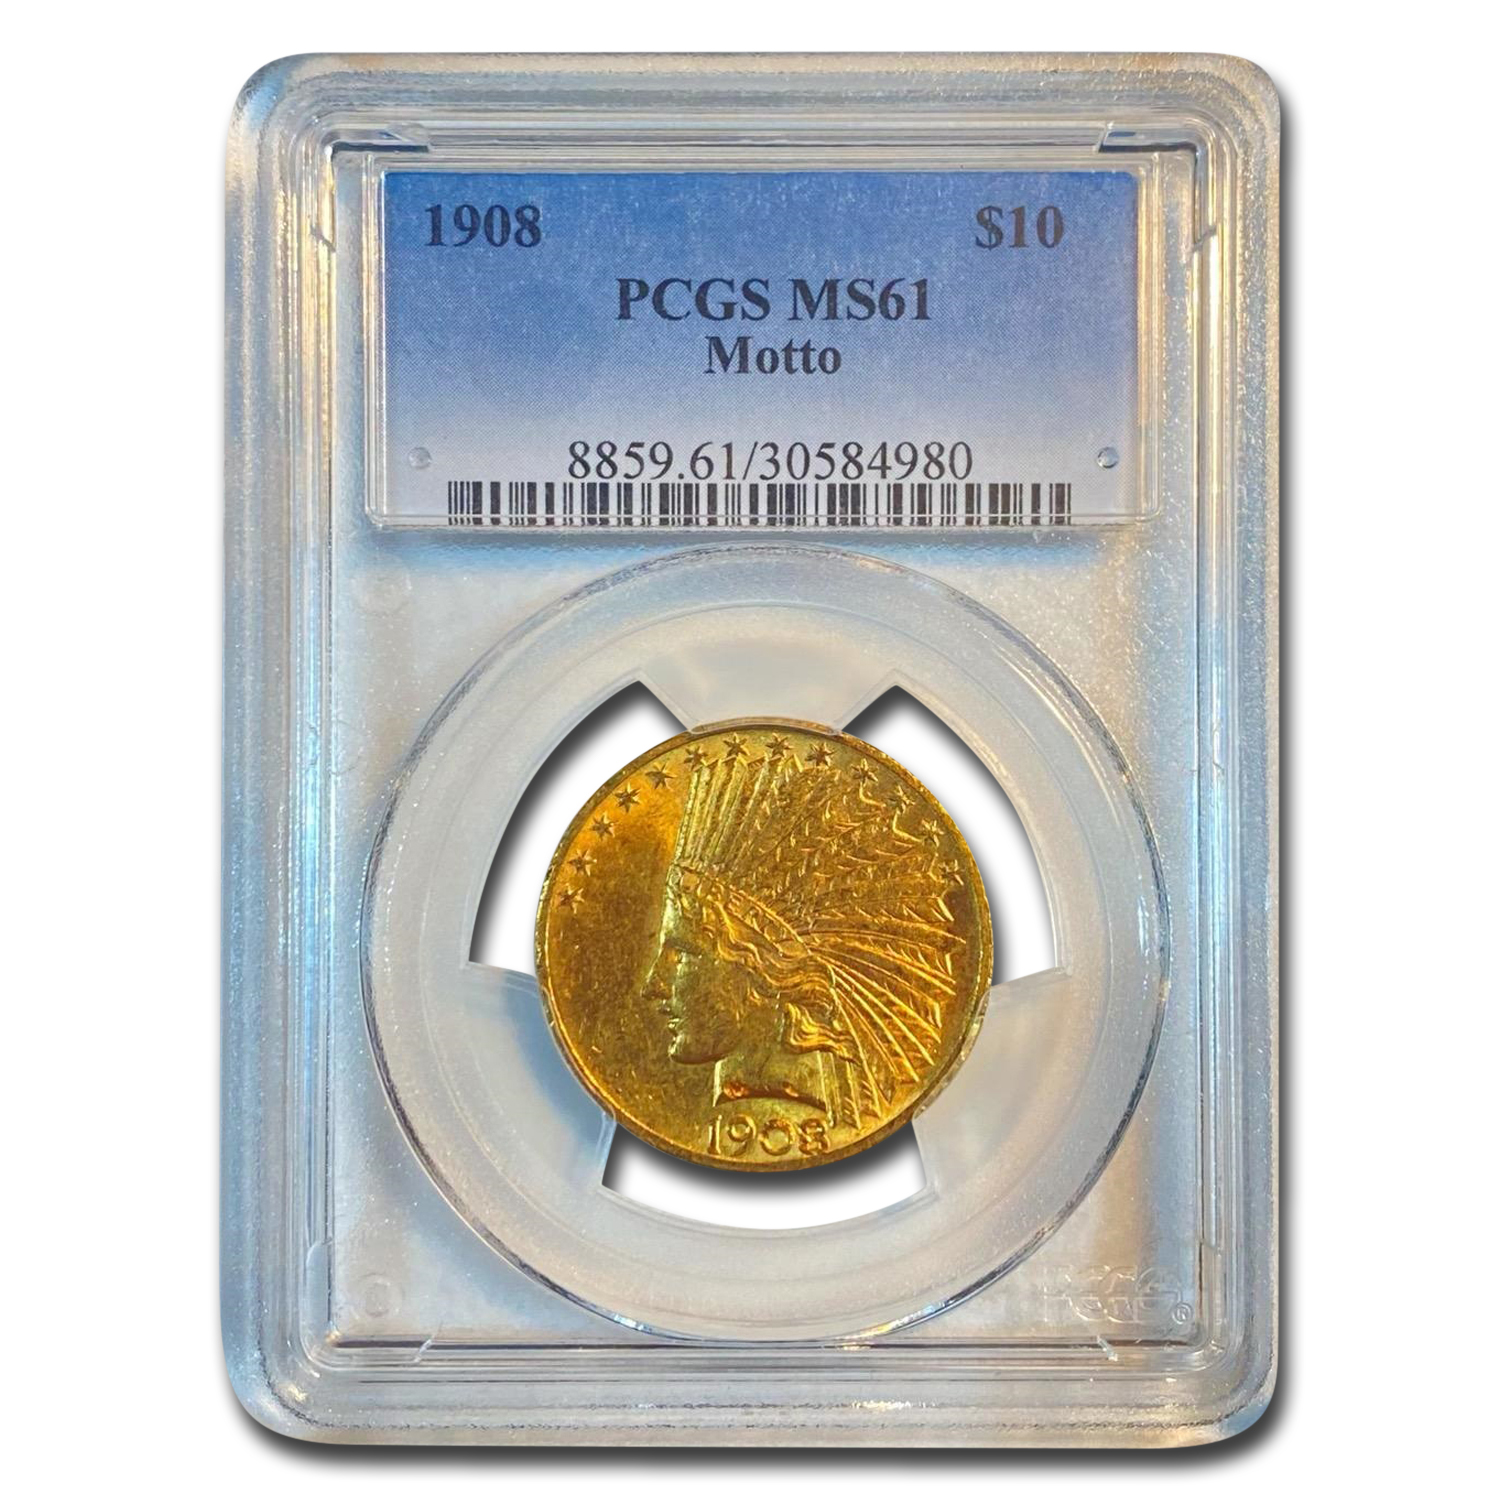 1908 $10 Indian Gold Eagle w/Motto MS-61 PCGS